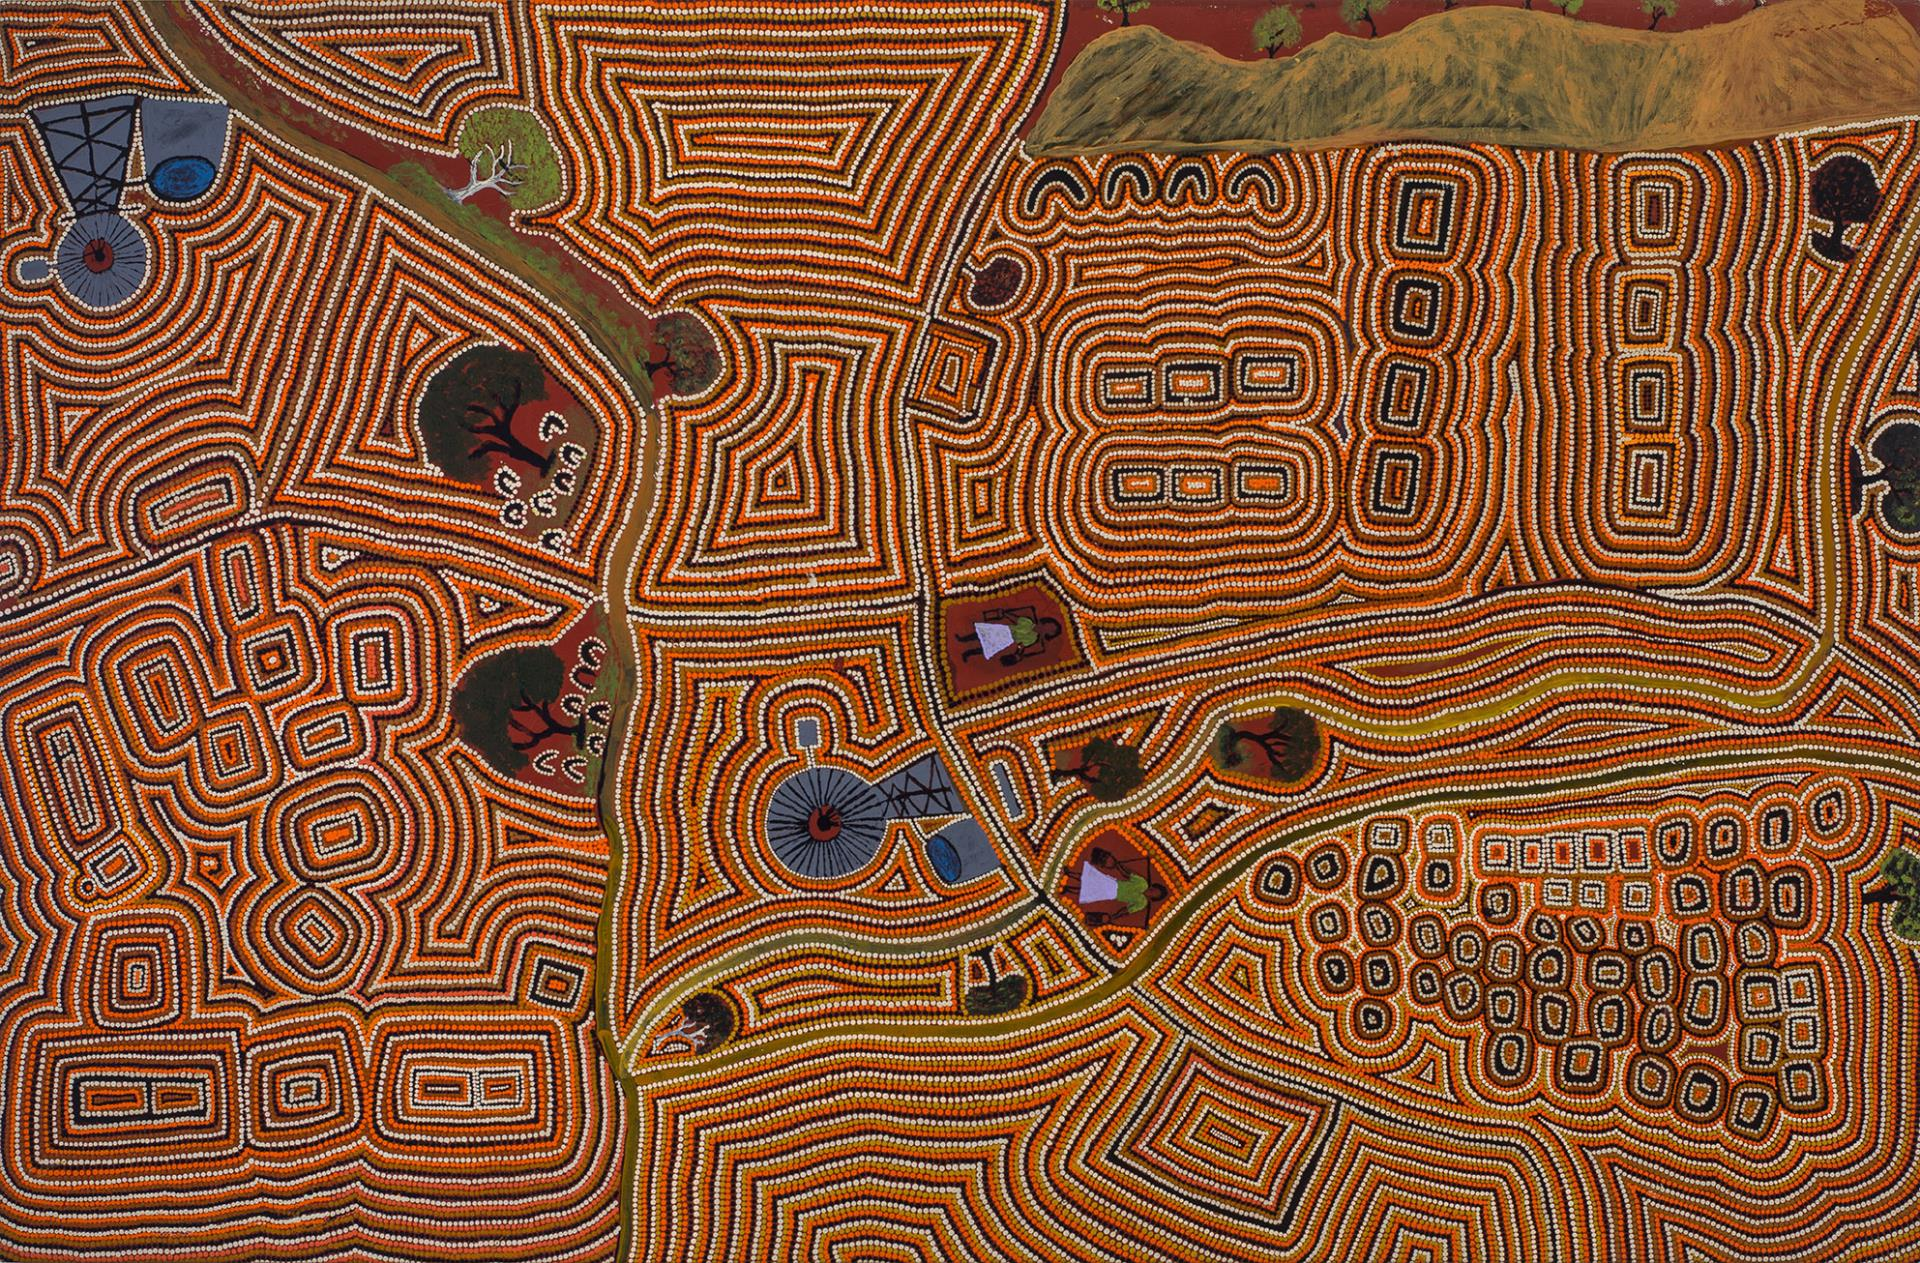 Biddy Wavehill Yamawurr Nangala and Jimmy Wavehill Ngawanyja Japalyi, Jinparrak (Old Wave Hill Station), 2015, acrylic on canvas, 150 x 96cm. Courtesy the artists and Karungkarni Art and Culture Aboriginal Corporation.